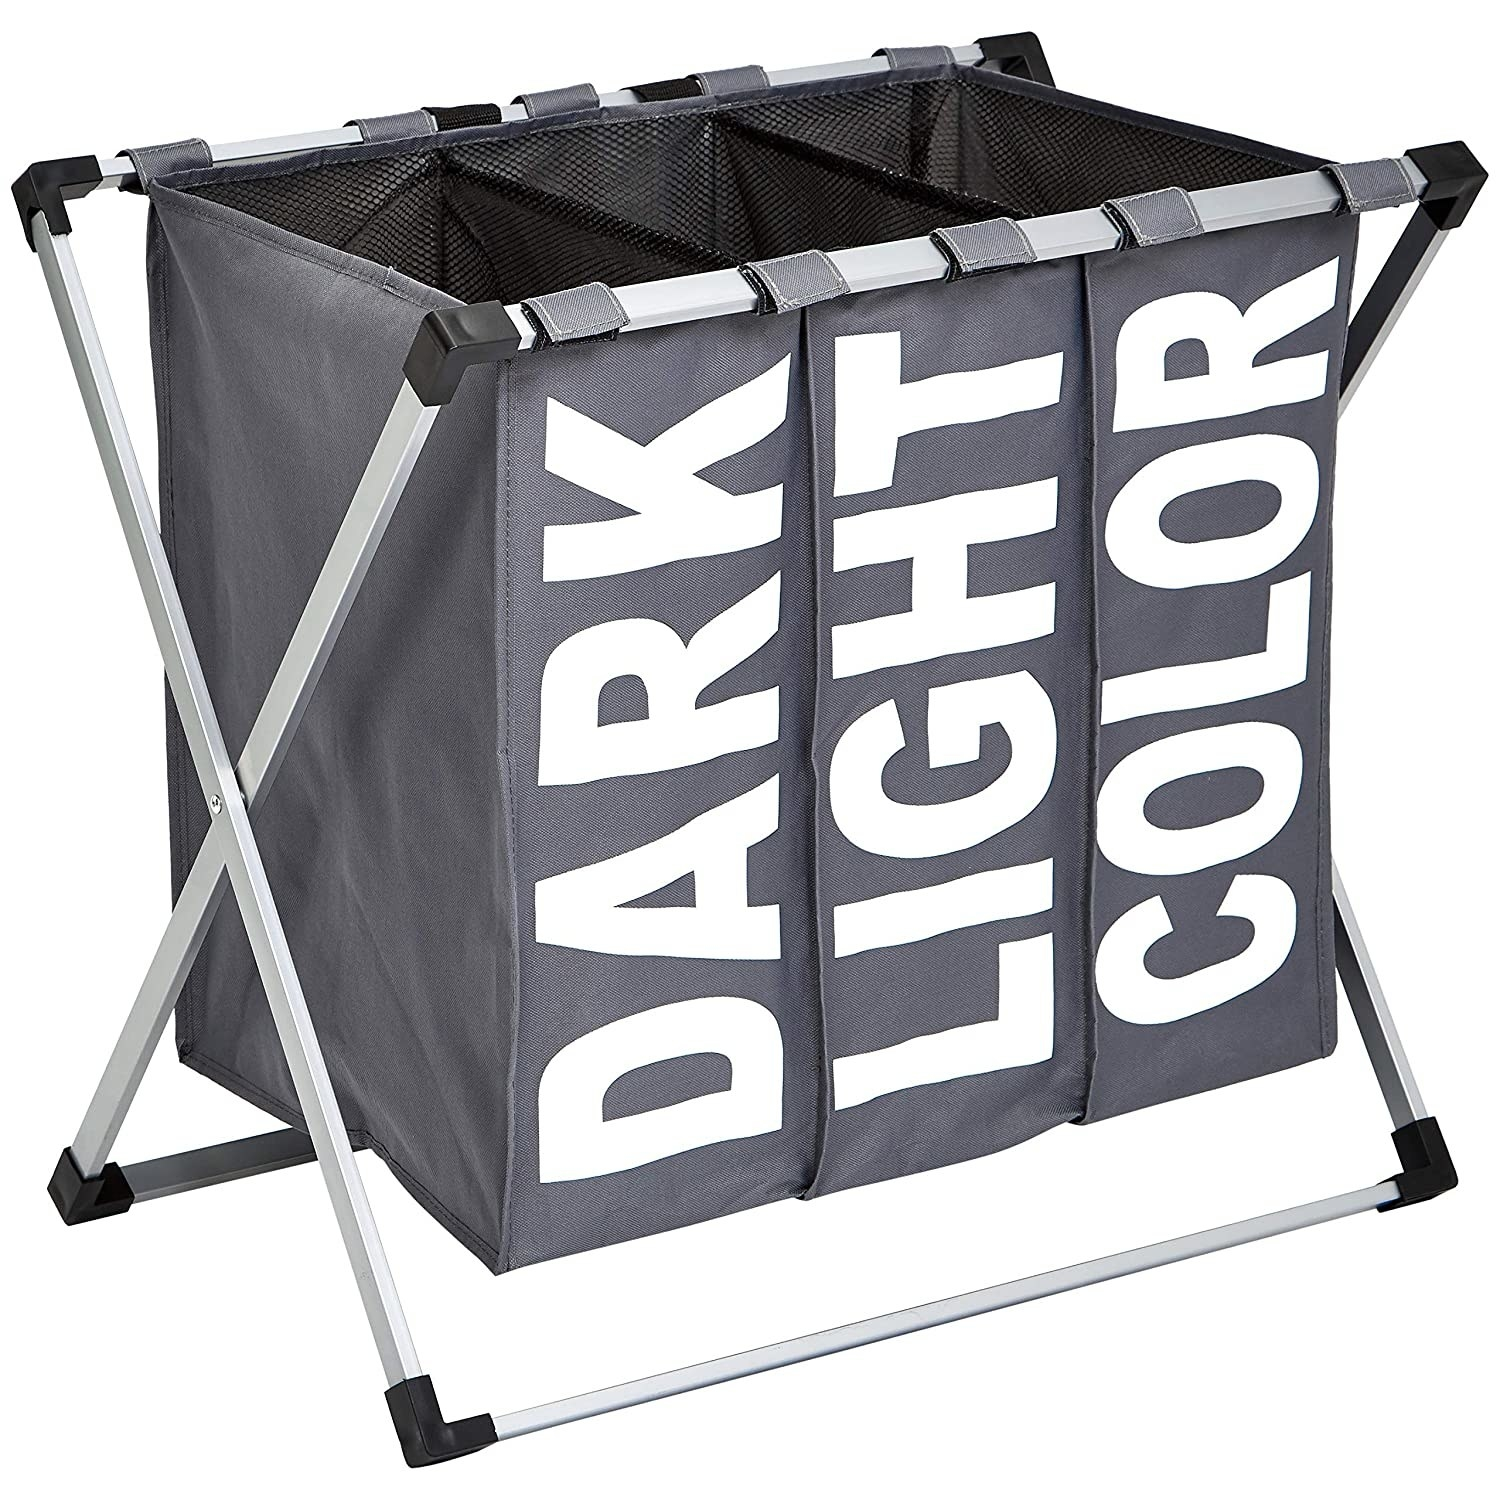 A three-way laundry hamper labelled dark, light and colour.